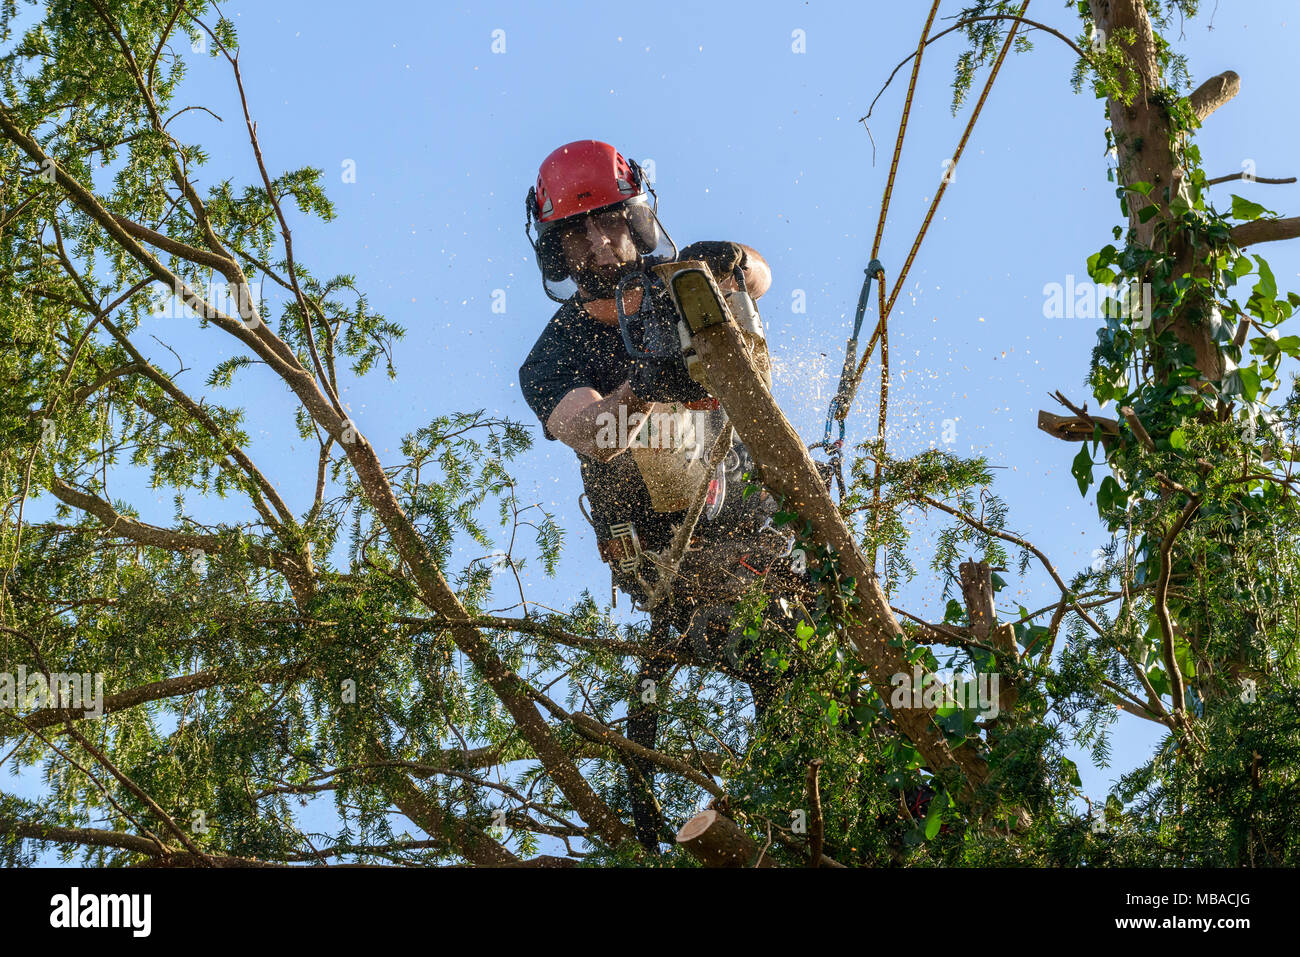 TREE SURGEON TRIMMING BACK YEW TREE IN DOMESTIC GARDEN UK.HE IS WEARING A PROTECTIVE HELMET WITH EAR DEFENDERS AND SAFETY FACE MASK. - Stock Image